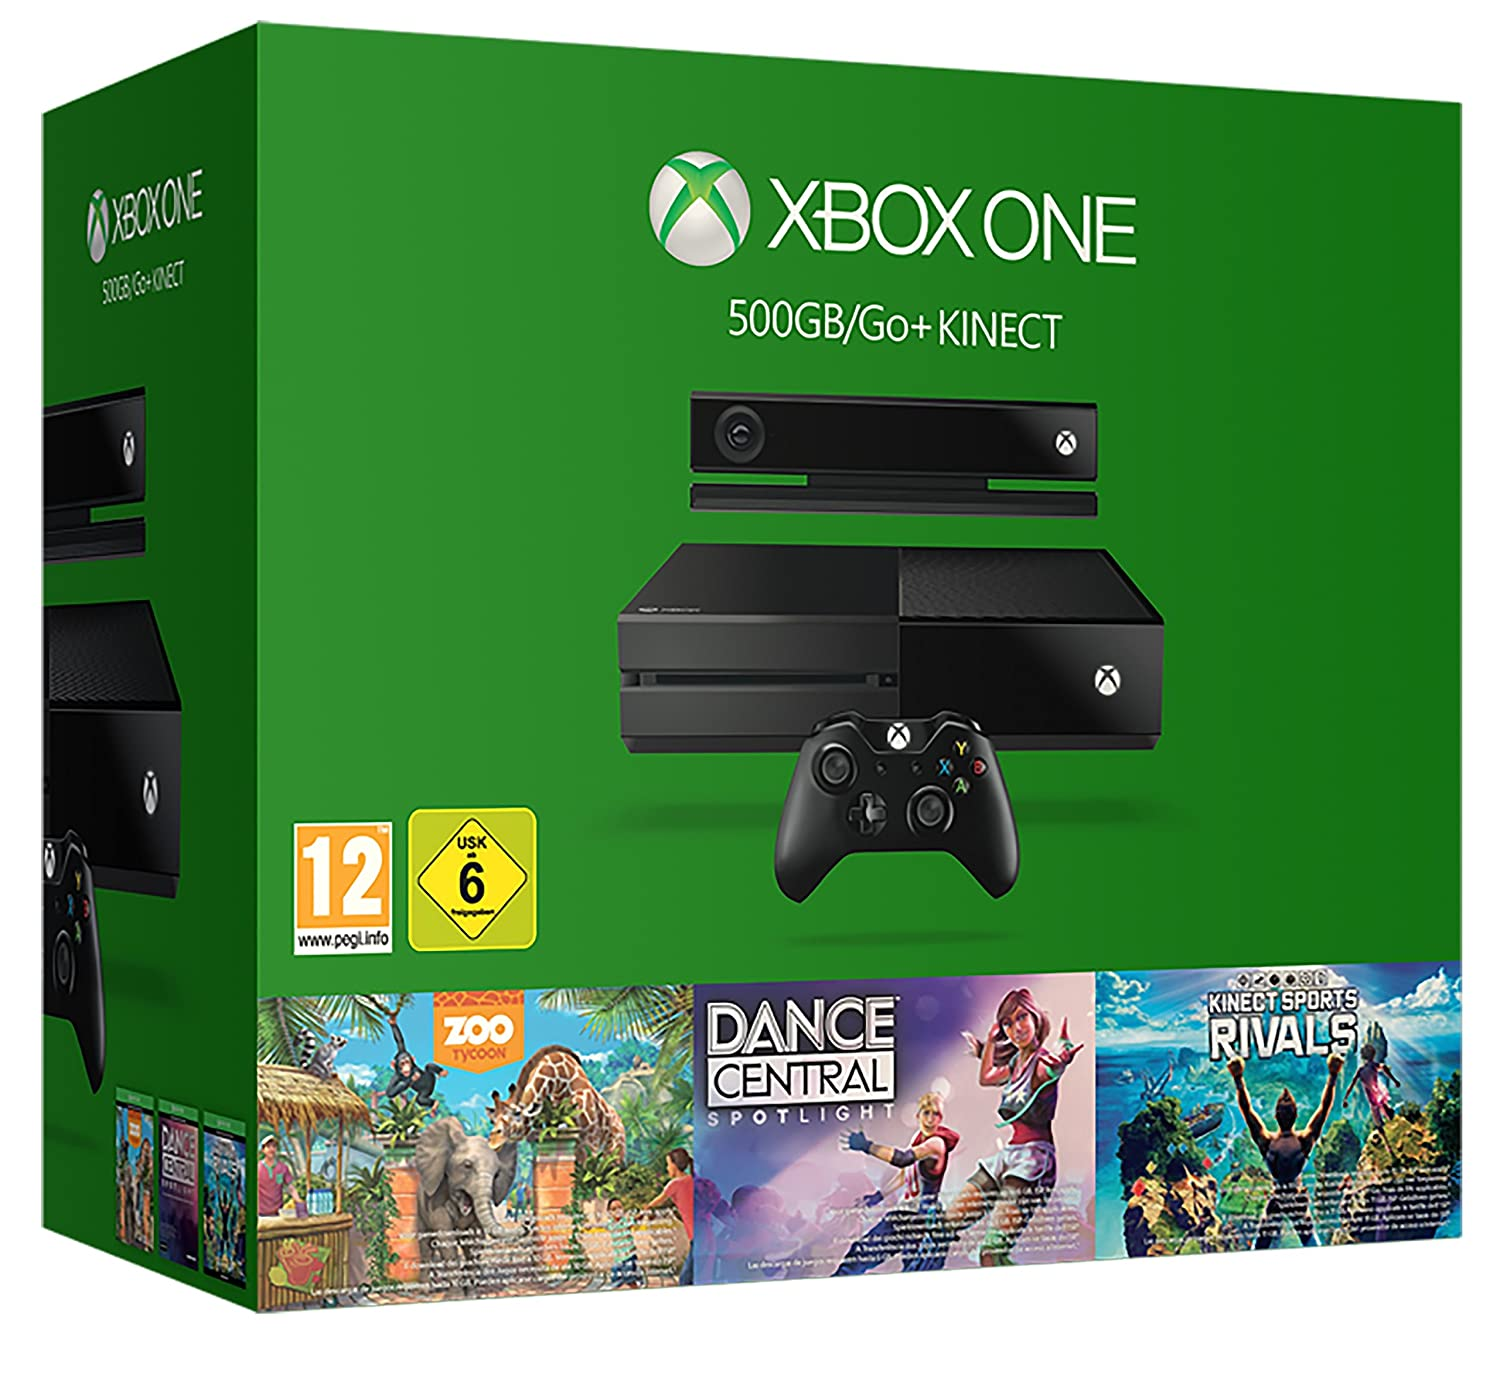 717ead2b6 Xbox One 500GB Console with Kinect - 3 Game Value Bundle (Kinect Sports  Rivals, Zoo Tycoon and Dance Central): Amazon.co.uk: PC & Video Games